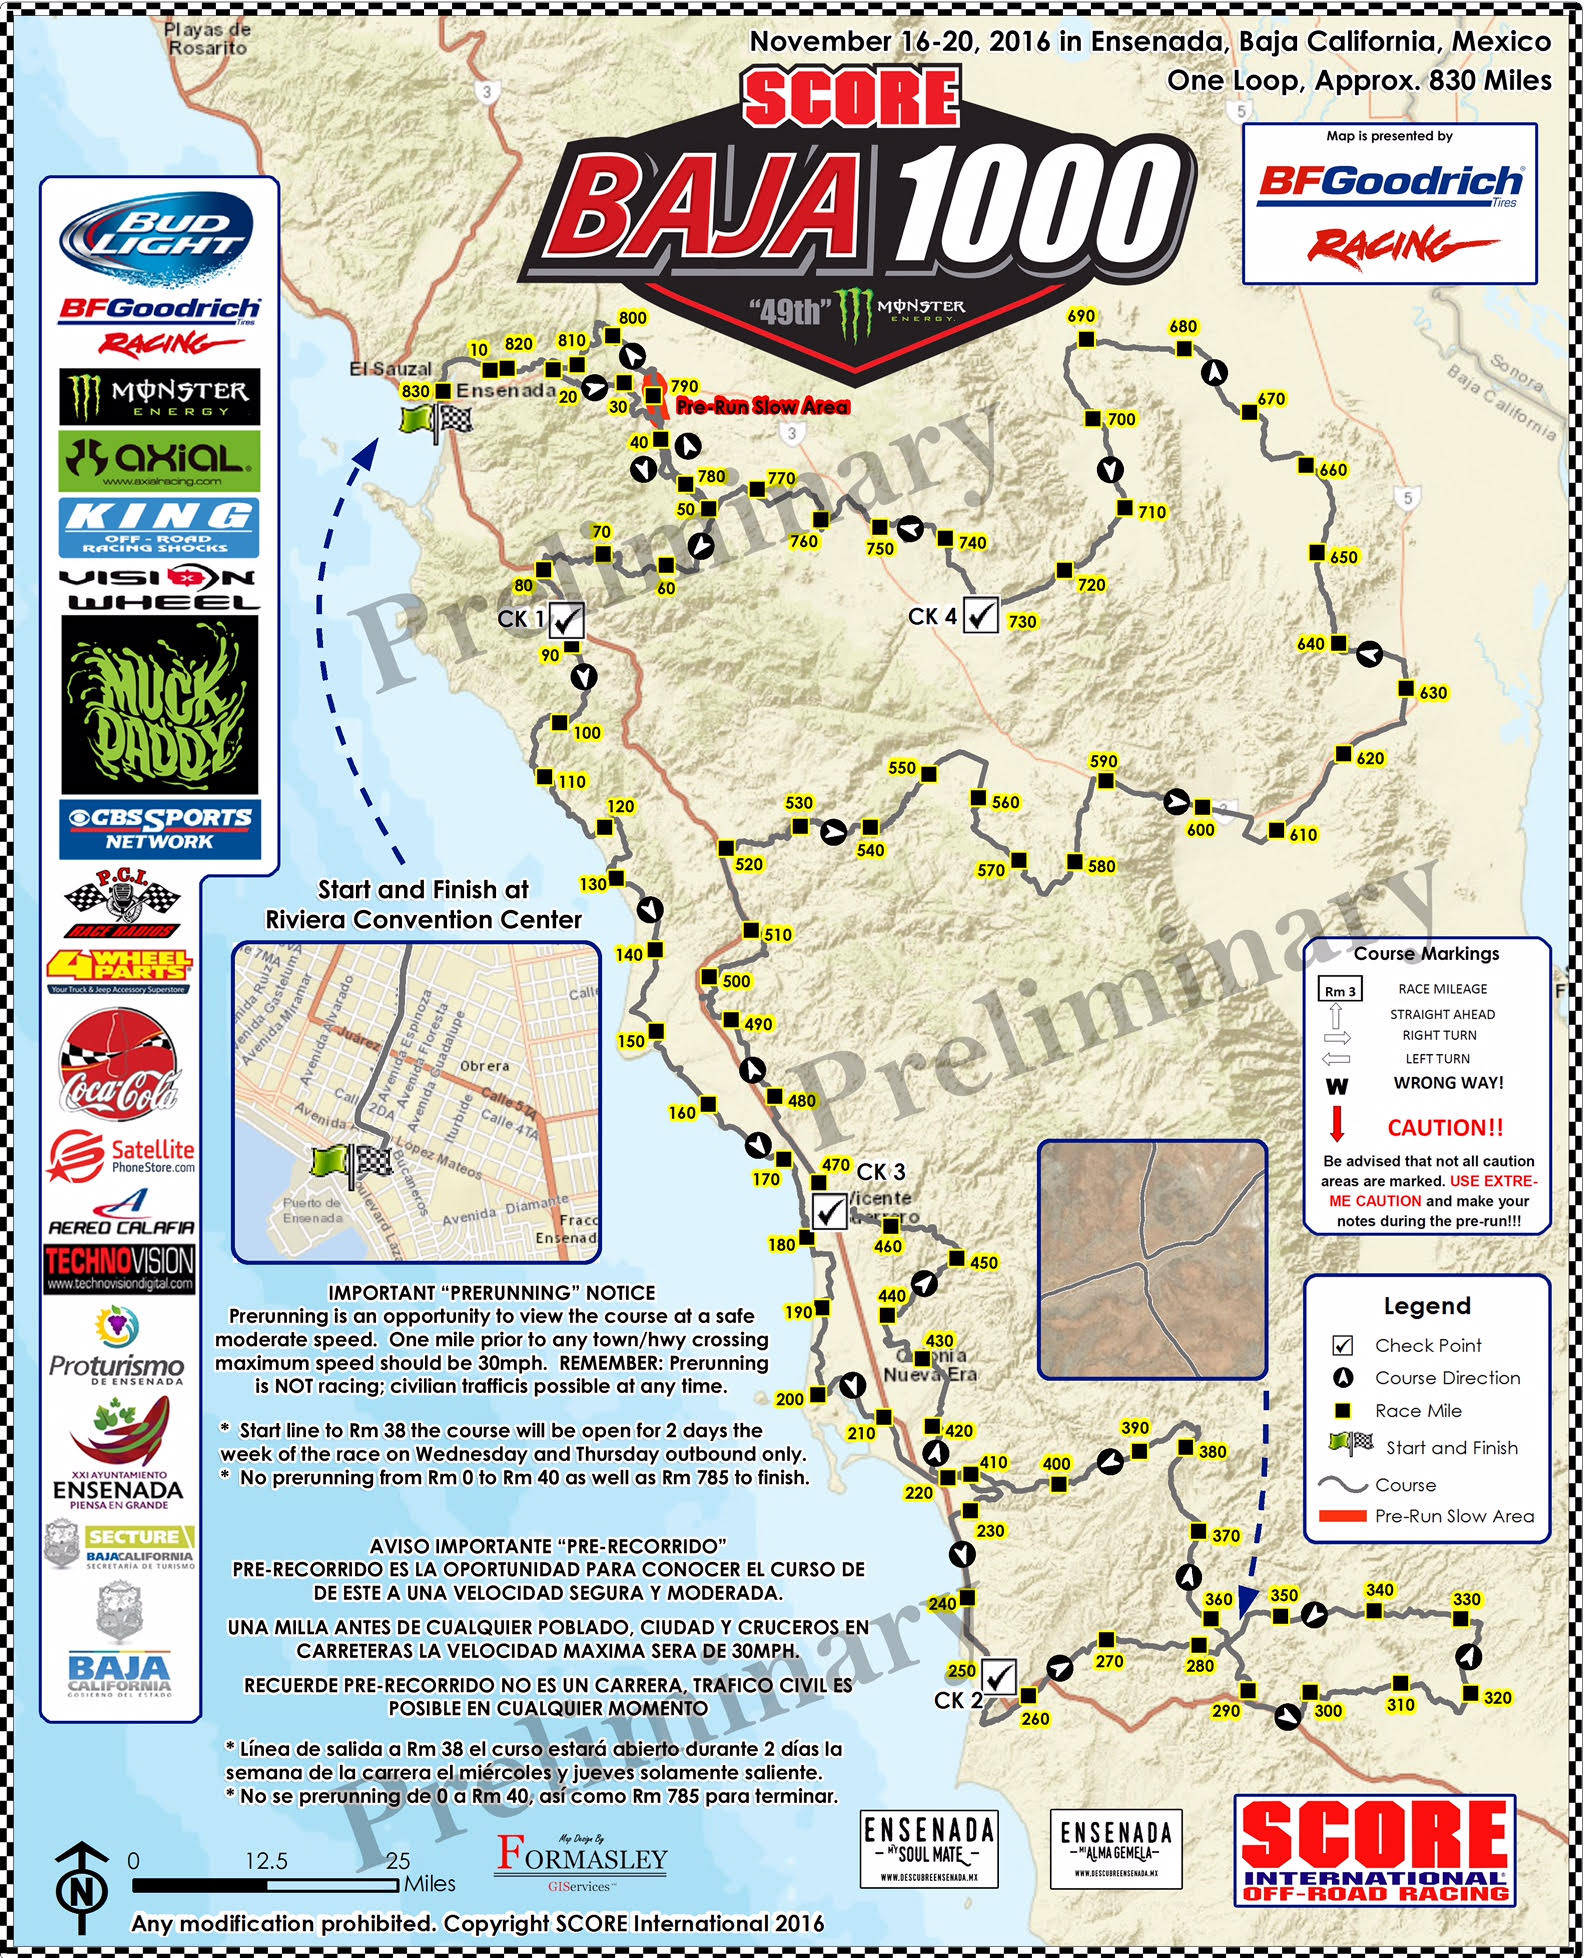 Baja 1000 Map Course map unveiled for 49th annual SCORE Baja 1000 at colorful